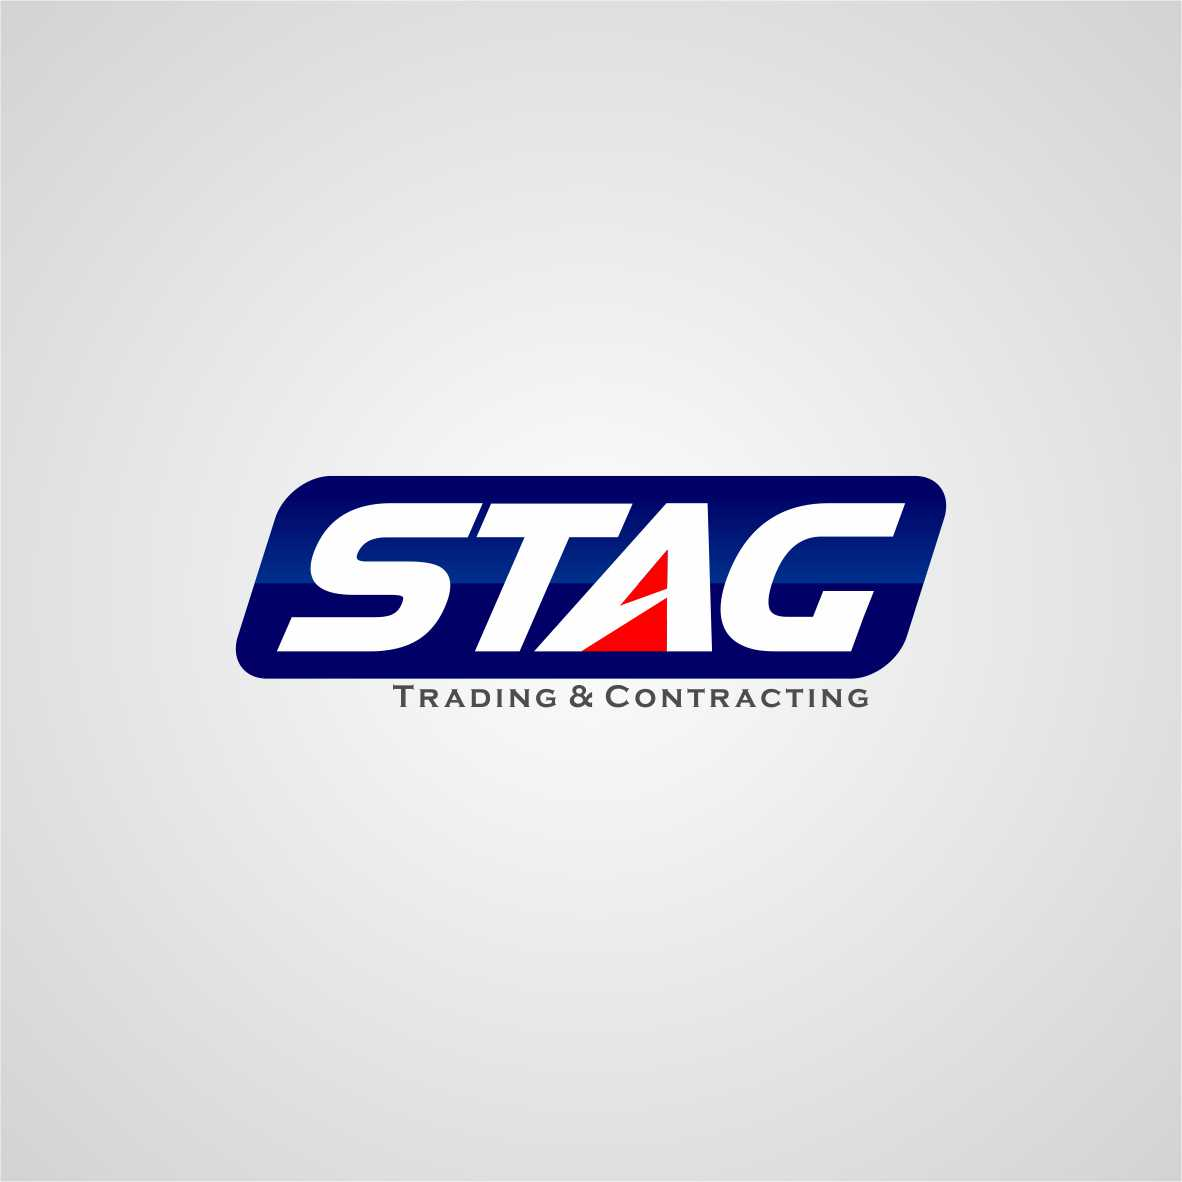 Logo Design by arteo_design - Entry No. 265 in the Logo Design Contest Captivating Logo Design for STAG Trading & Contracting.